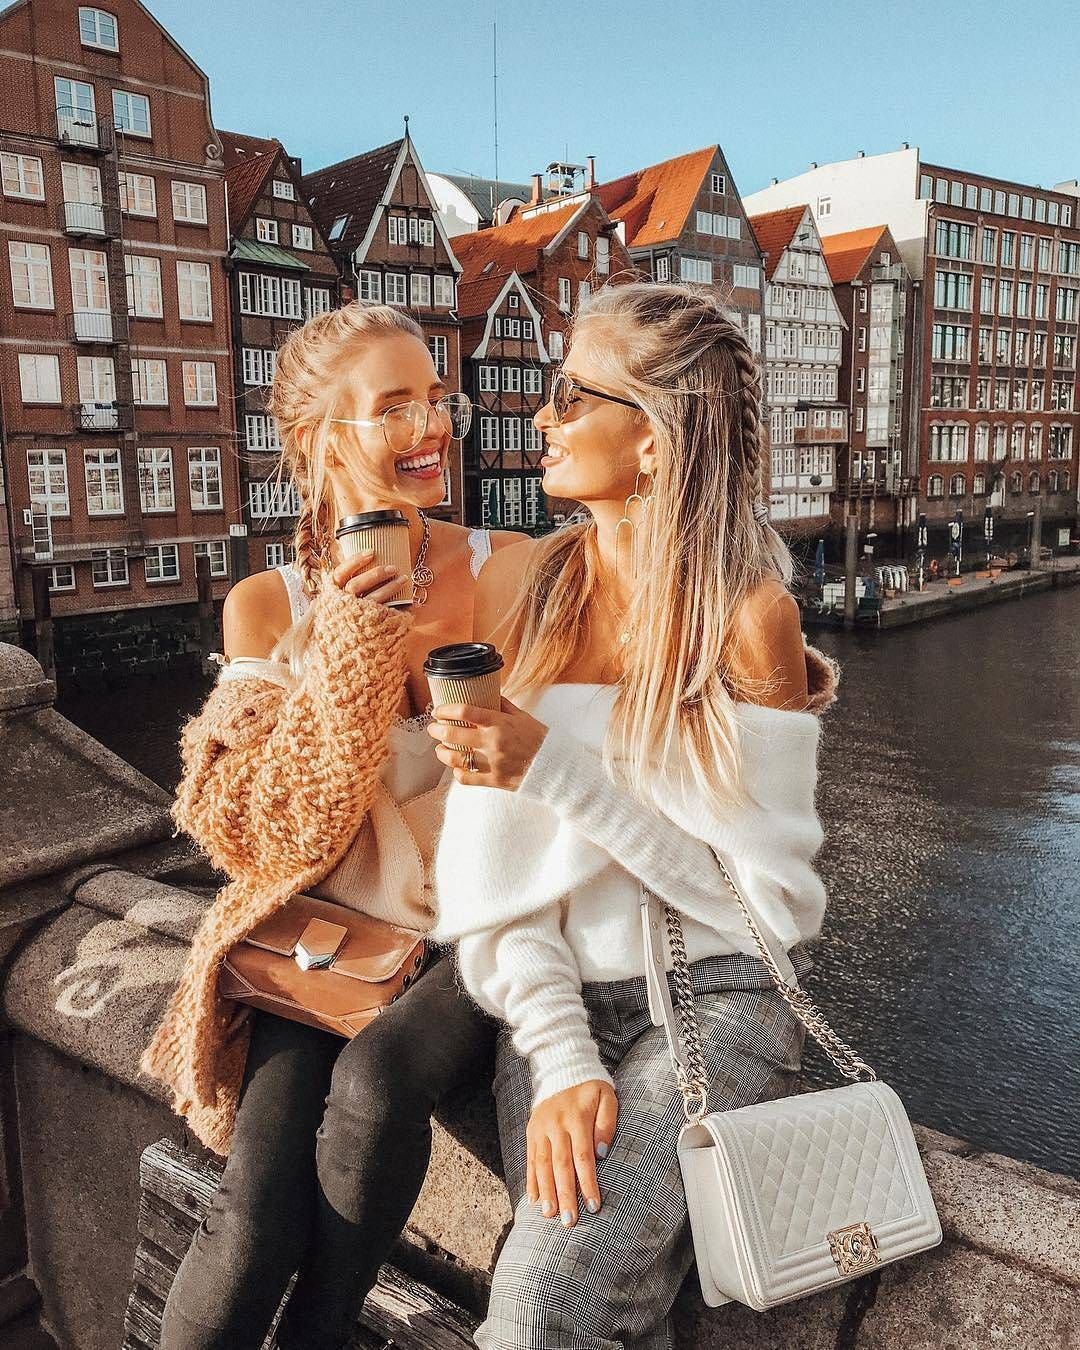 Different financial situations | 7 Signs Traveling With Your Bestie Is Not the Best Idea | Her Beauty